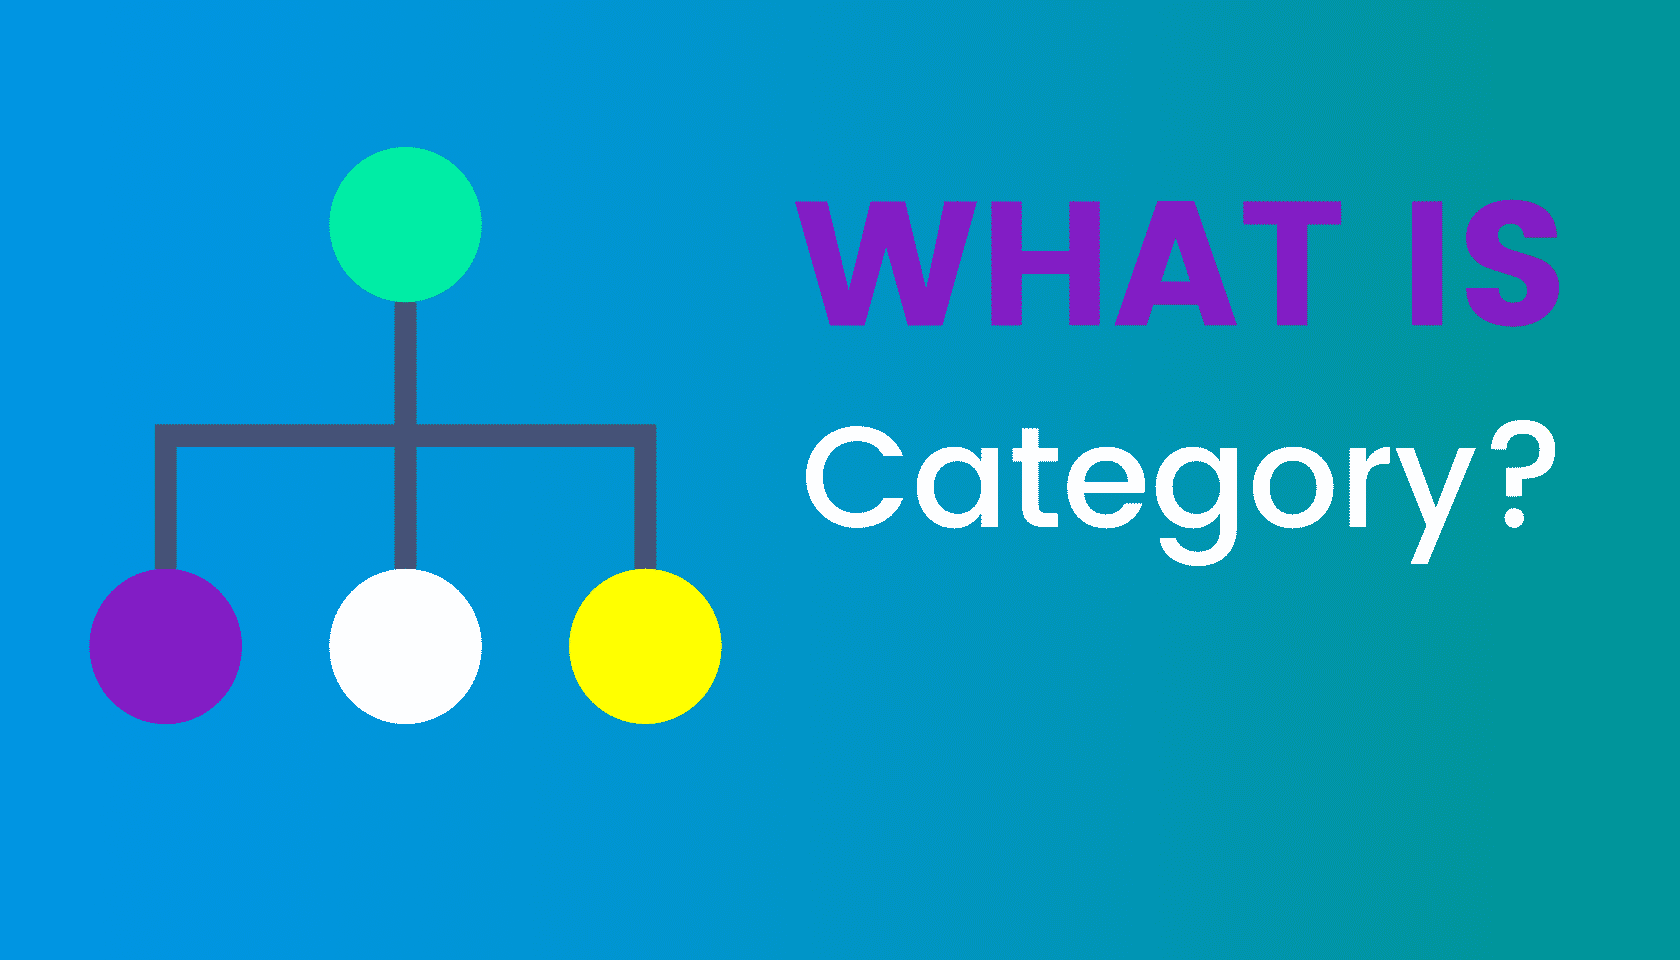 What is: Category (Categories)